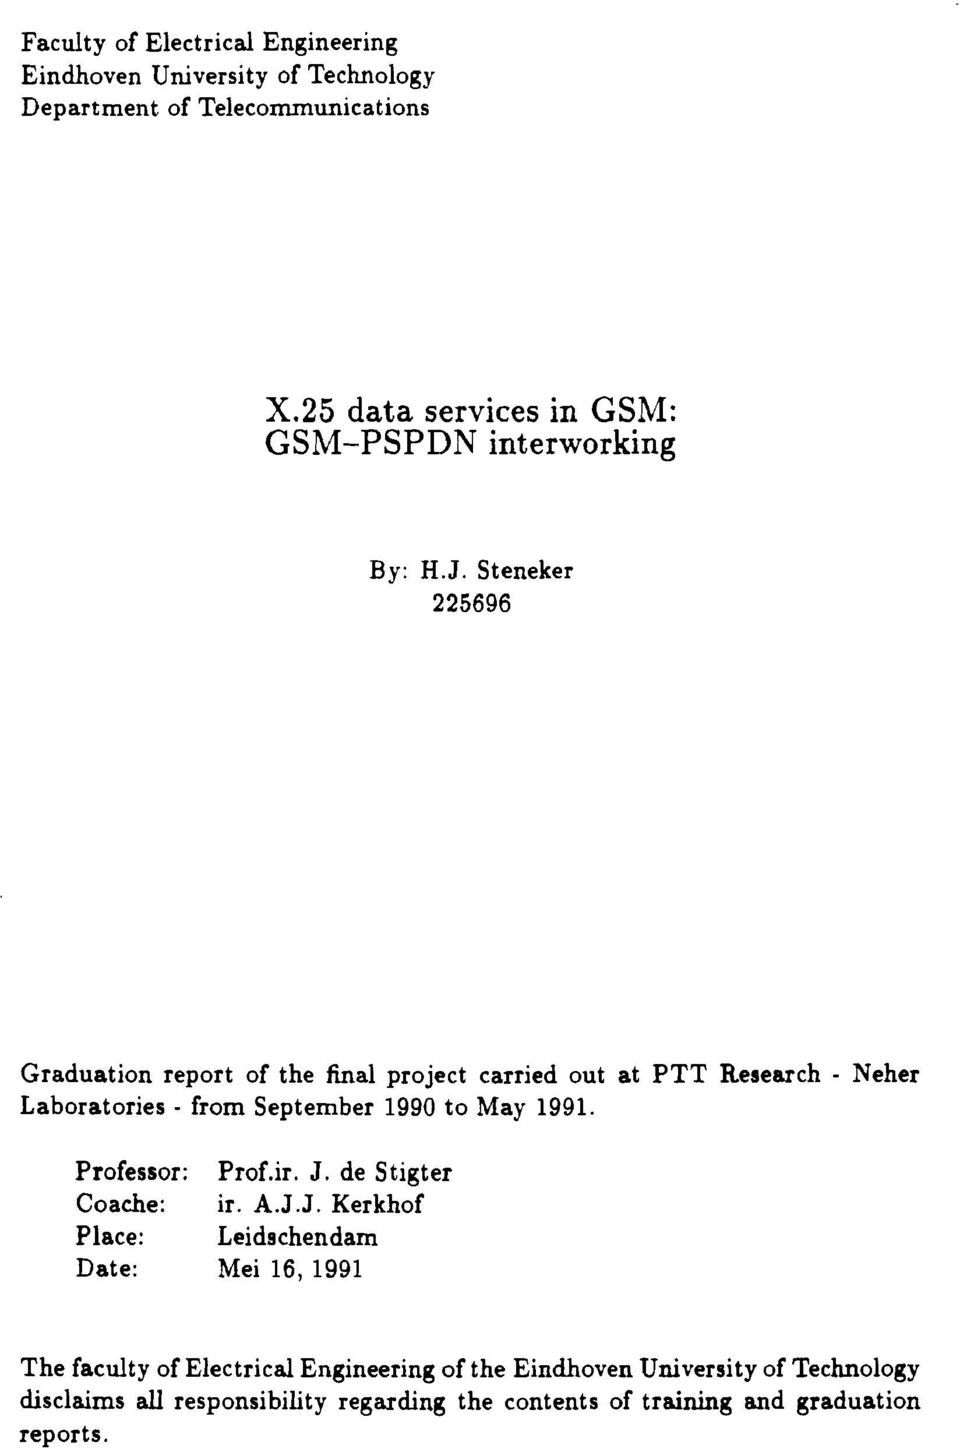 Steneker 225696 Graduation report of the final project carried out at PTT Research - Neher Laboratories - from September 1990 to May 1991.